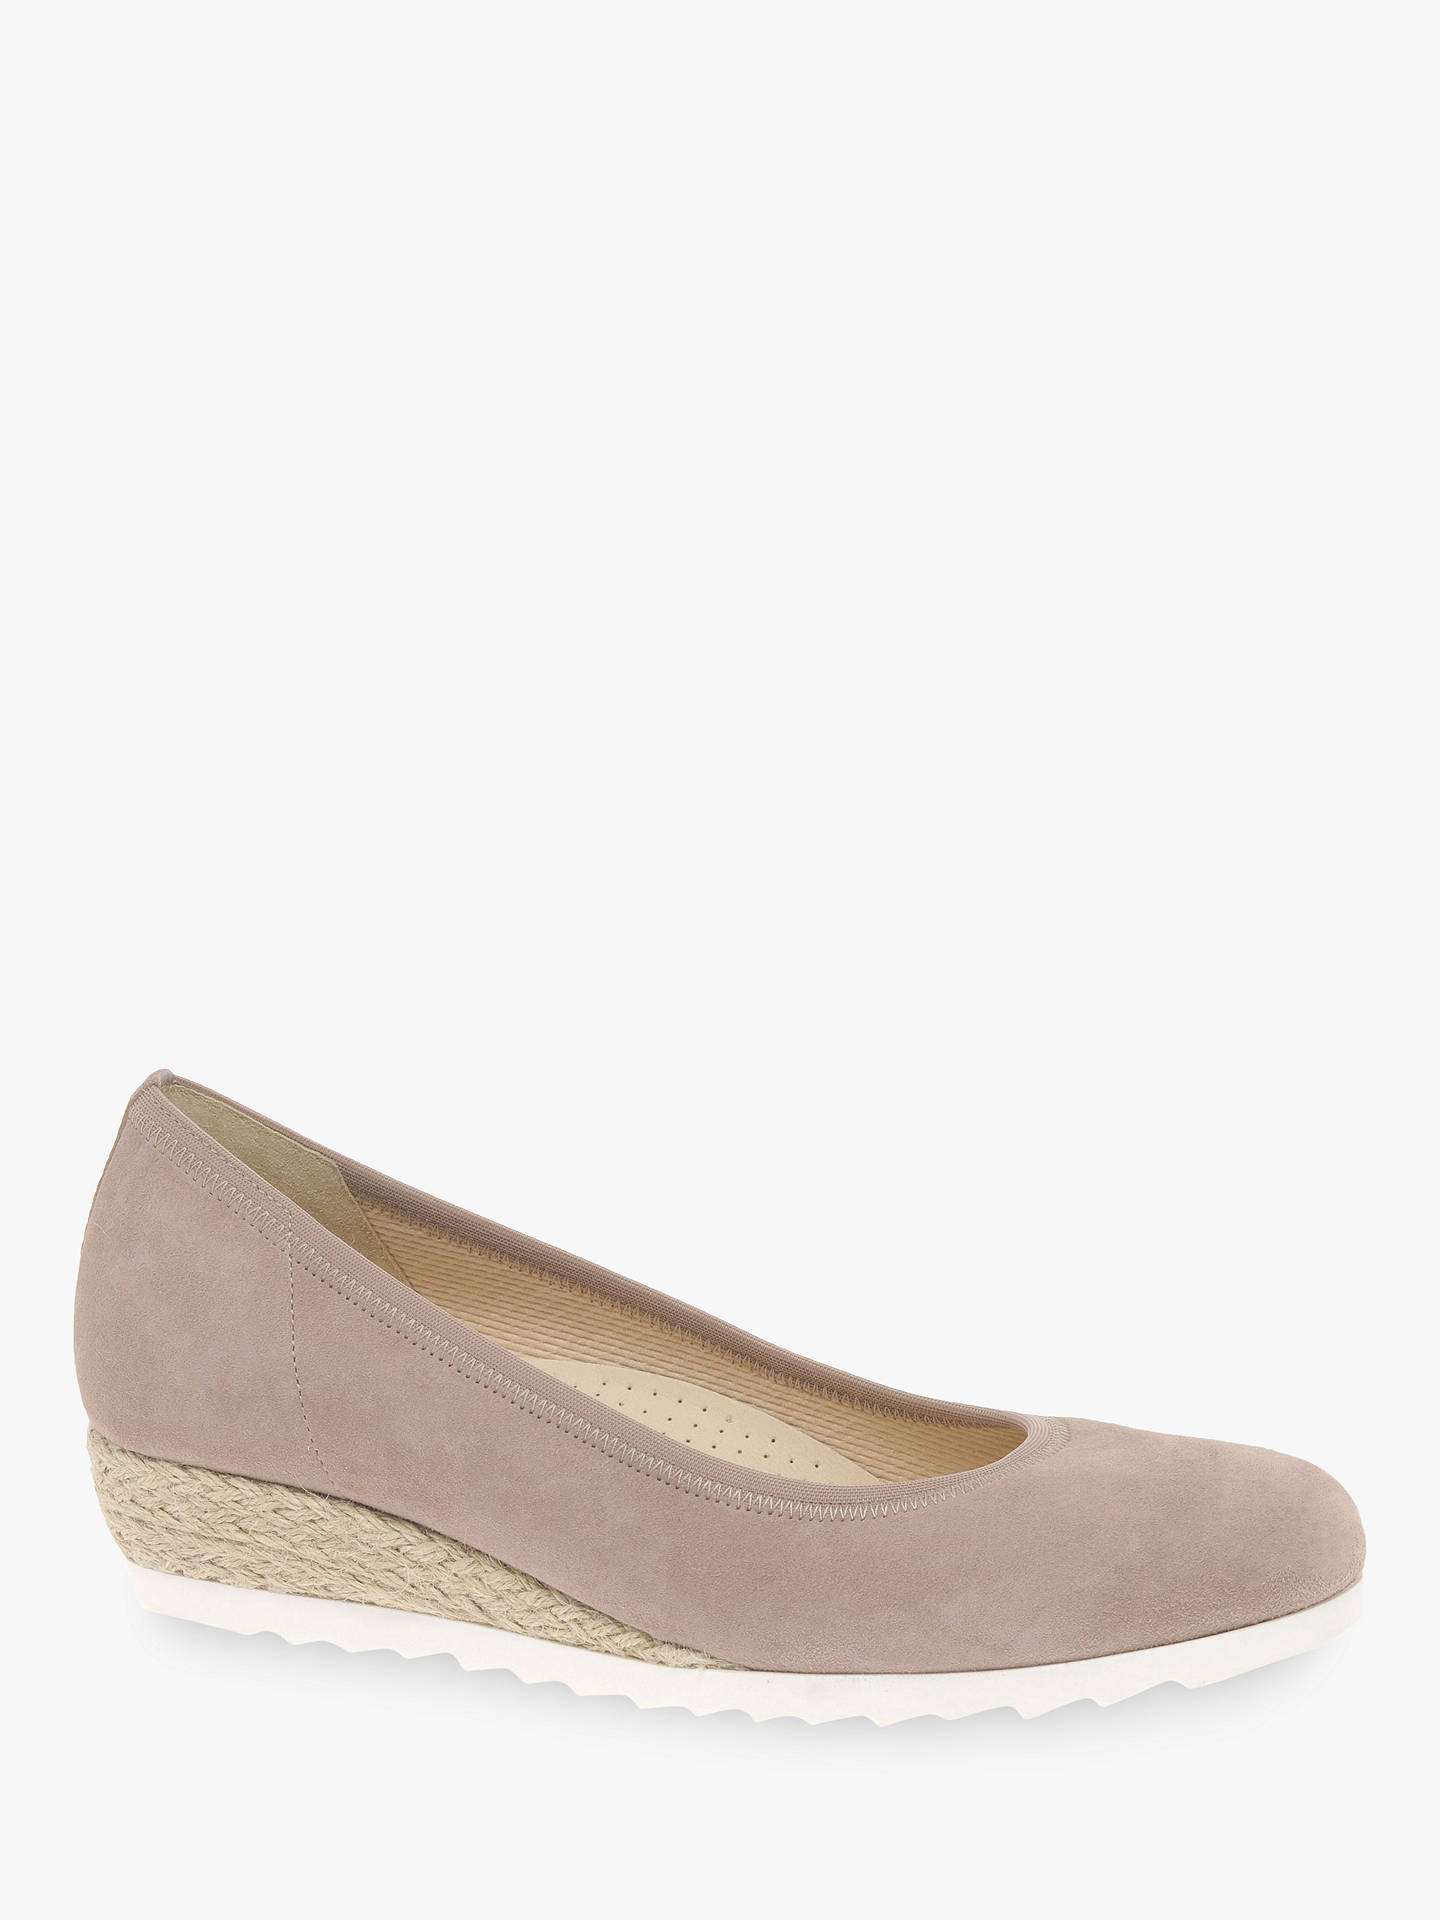 c7c5a60735081 ... Buy Gabor Epworth Wide Fit Espadrille Wedge Pumps, Blush Suede, 5  Online at johnlewis